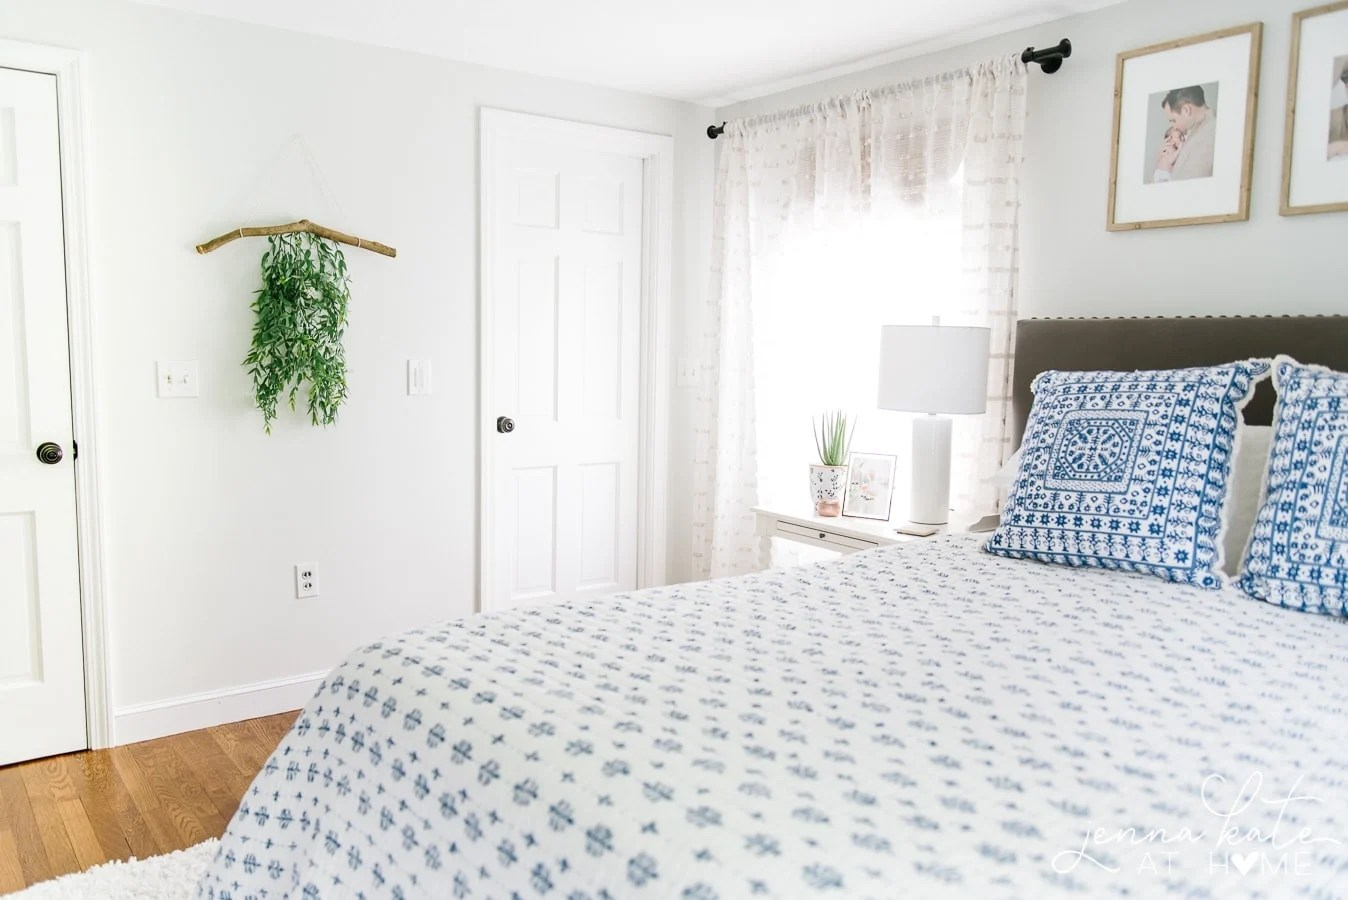 Photo of bedroom, with branch wall hanging near door, near bed with blue and white coverlet & pillows